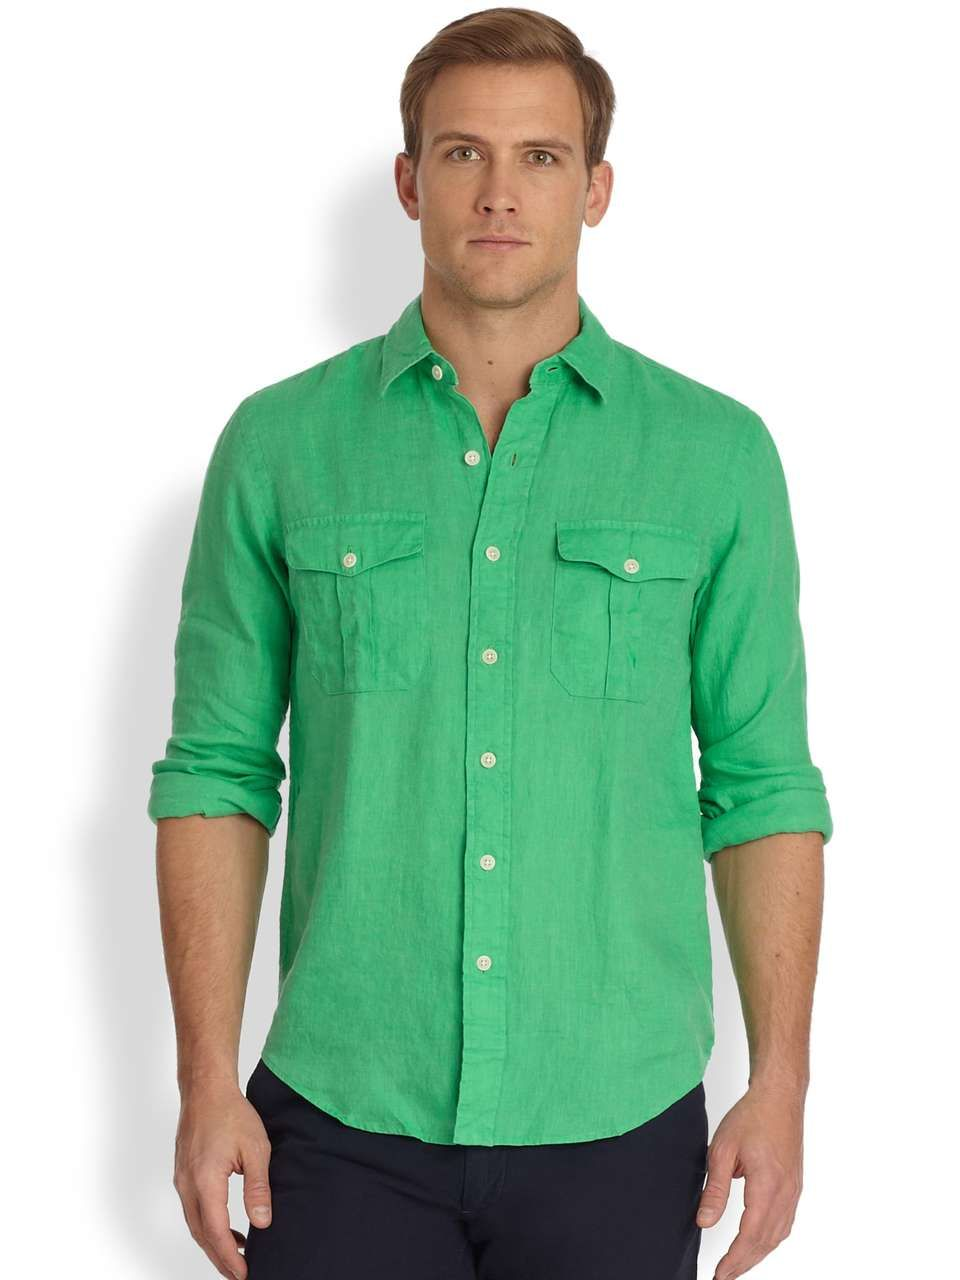 Pin By Dinwah On My Fashion Mens Fashion Business Casual Men